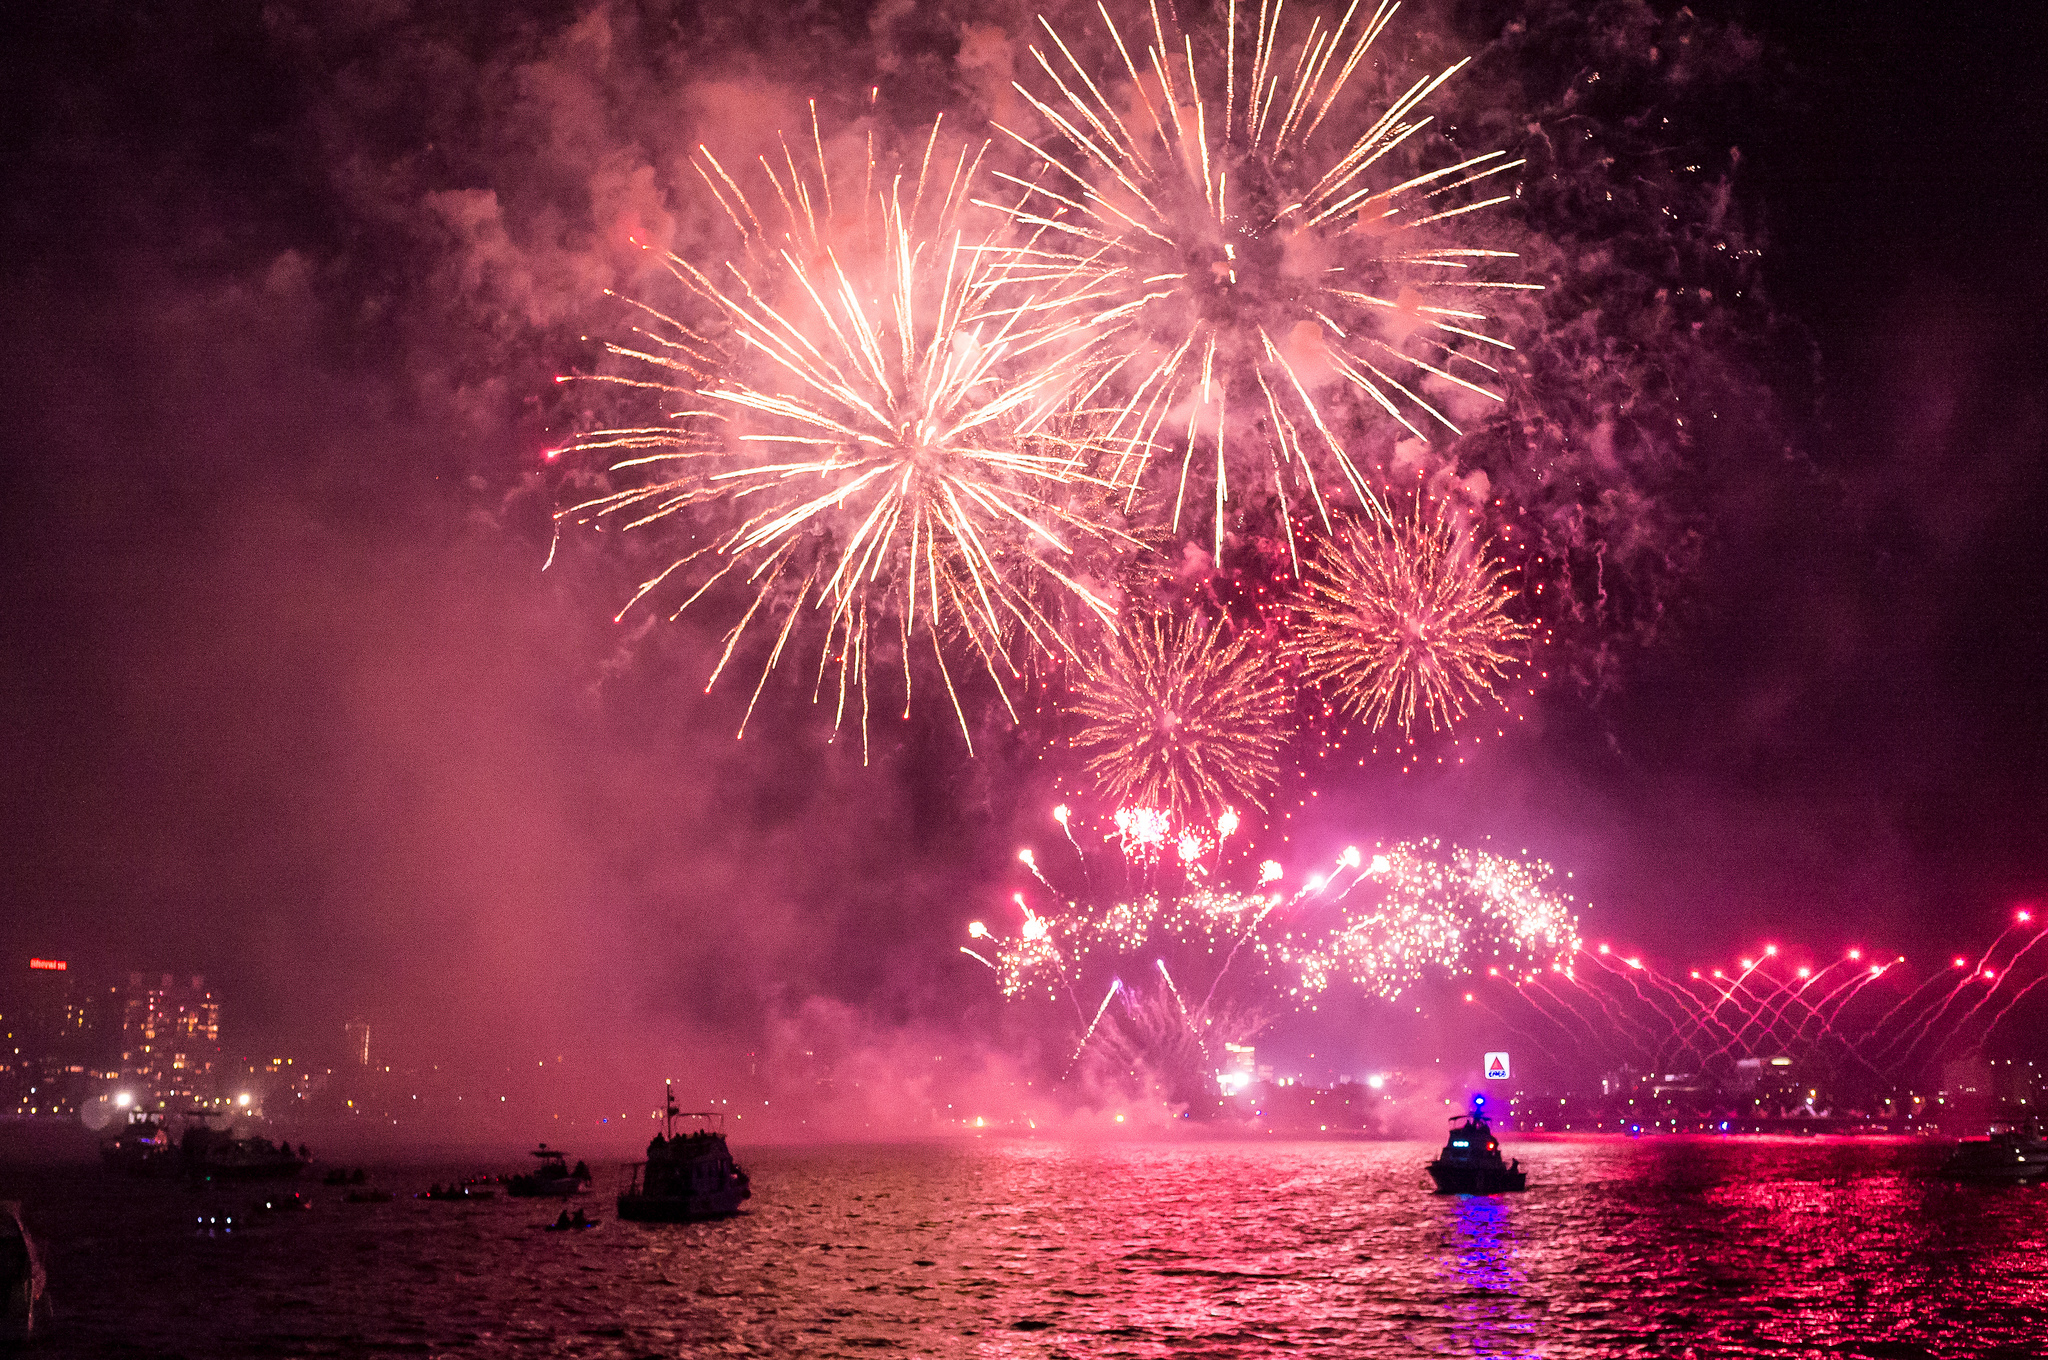 The Best 4th Of July Fireworks Shows In Massachusetts In